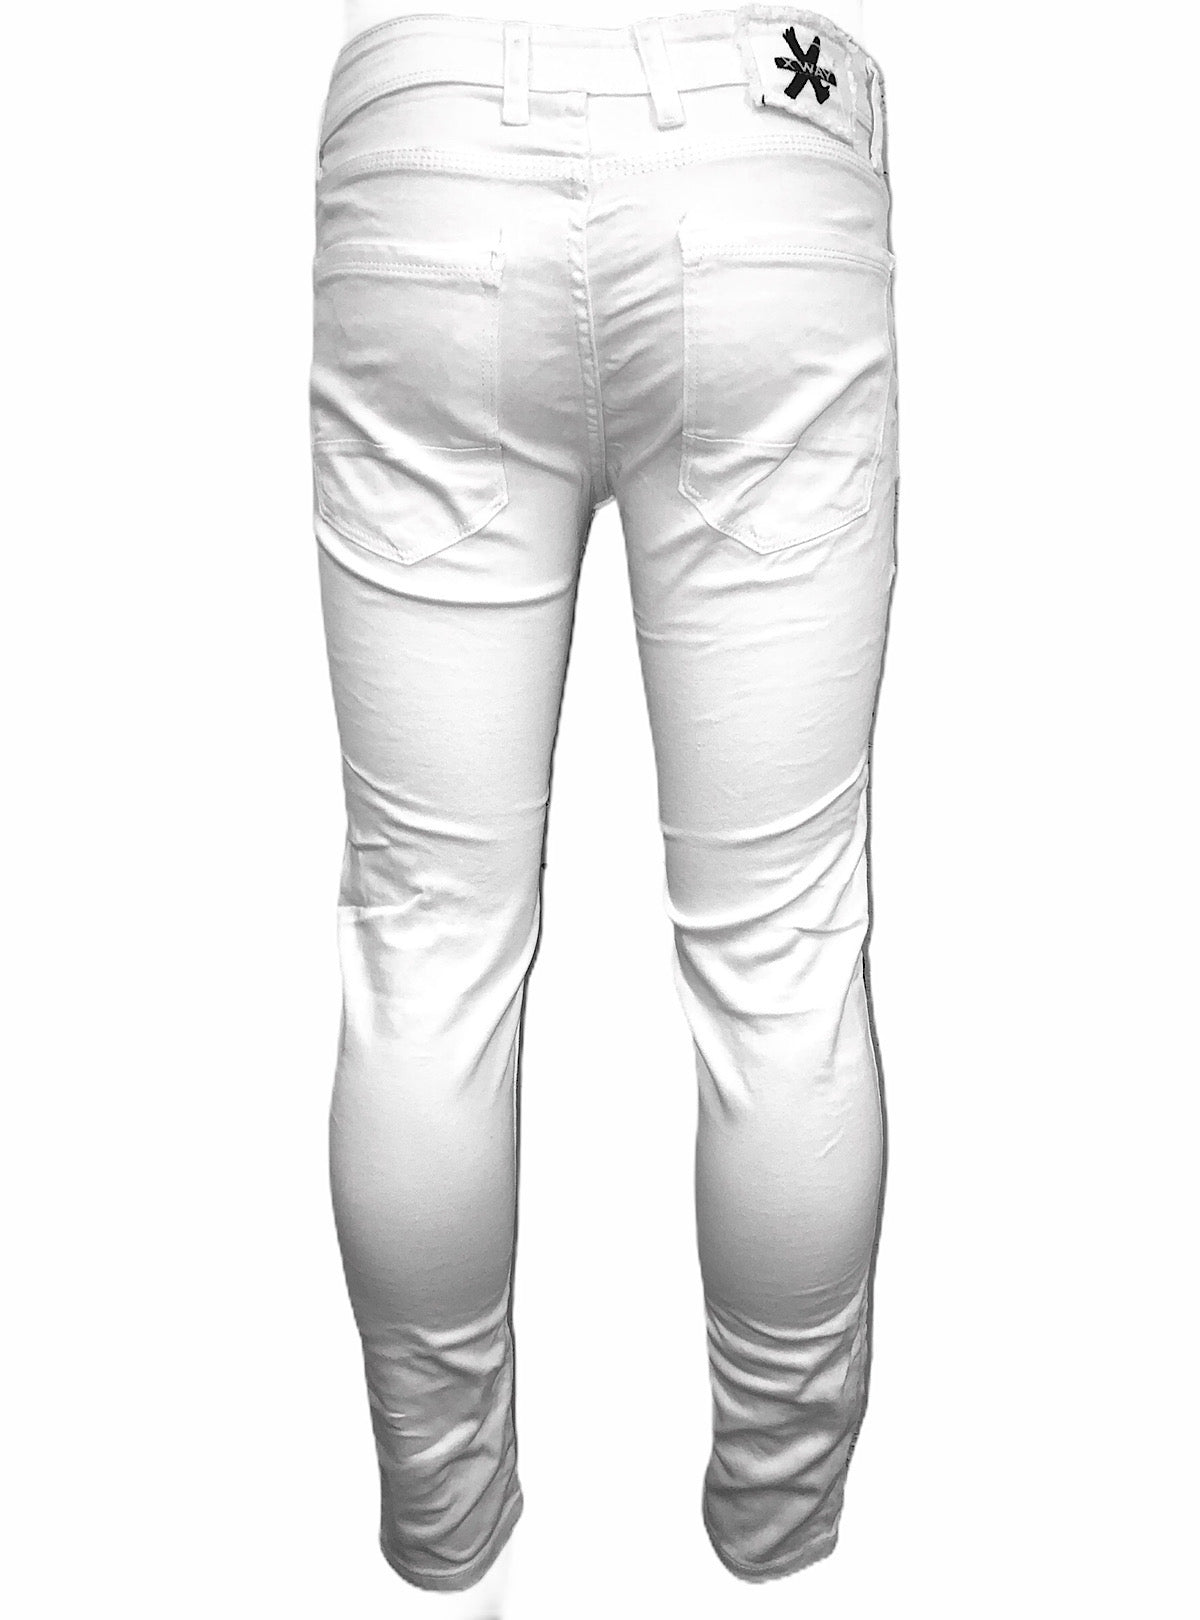 X-Way Jeans - XWAY BLACK - White - 6062